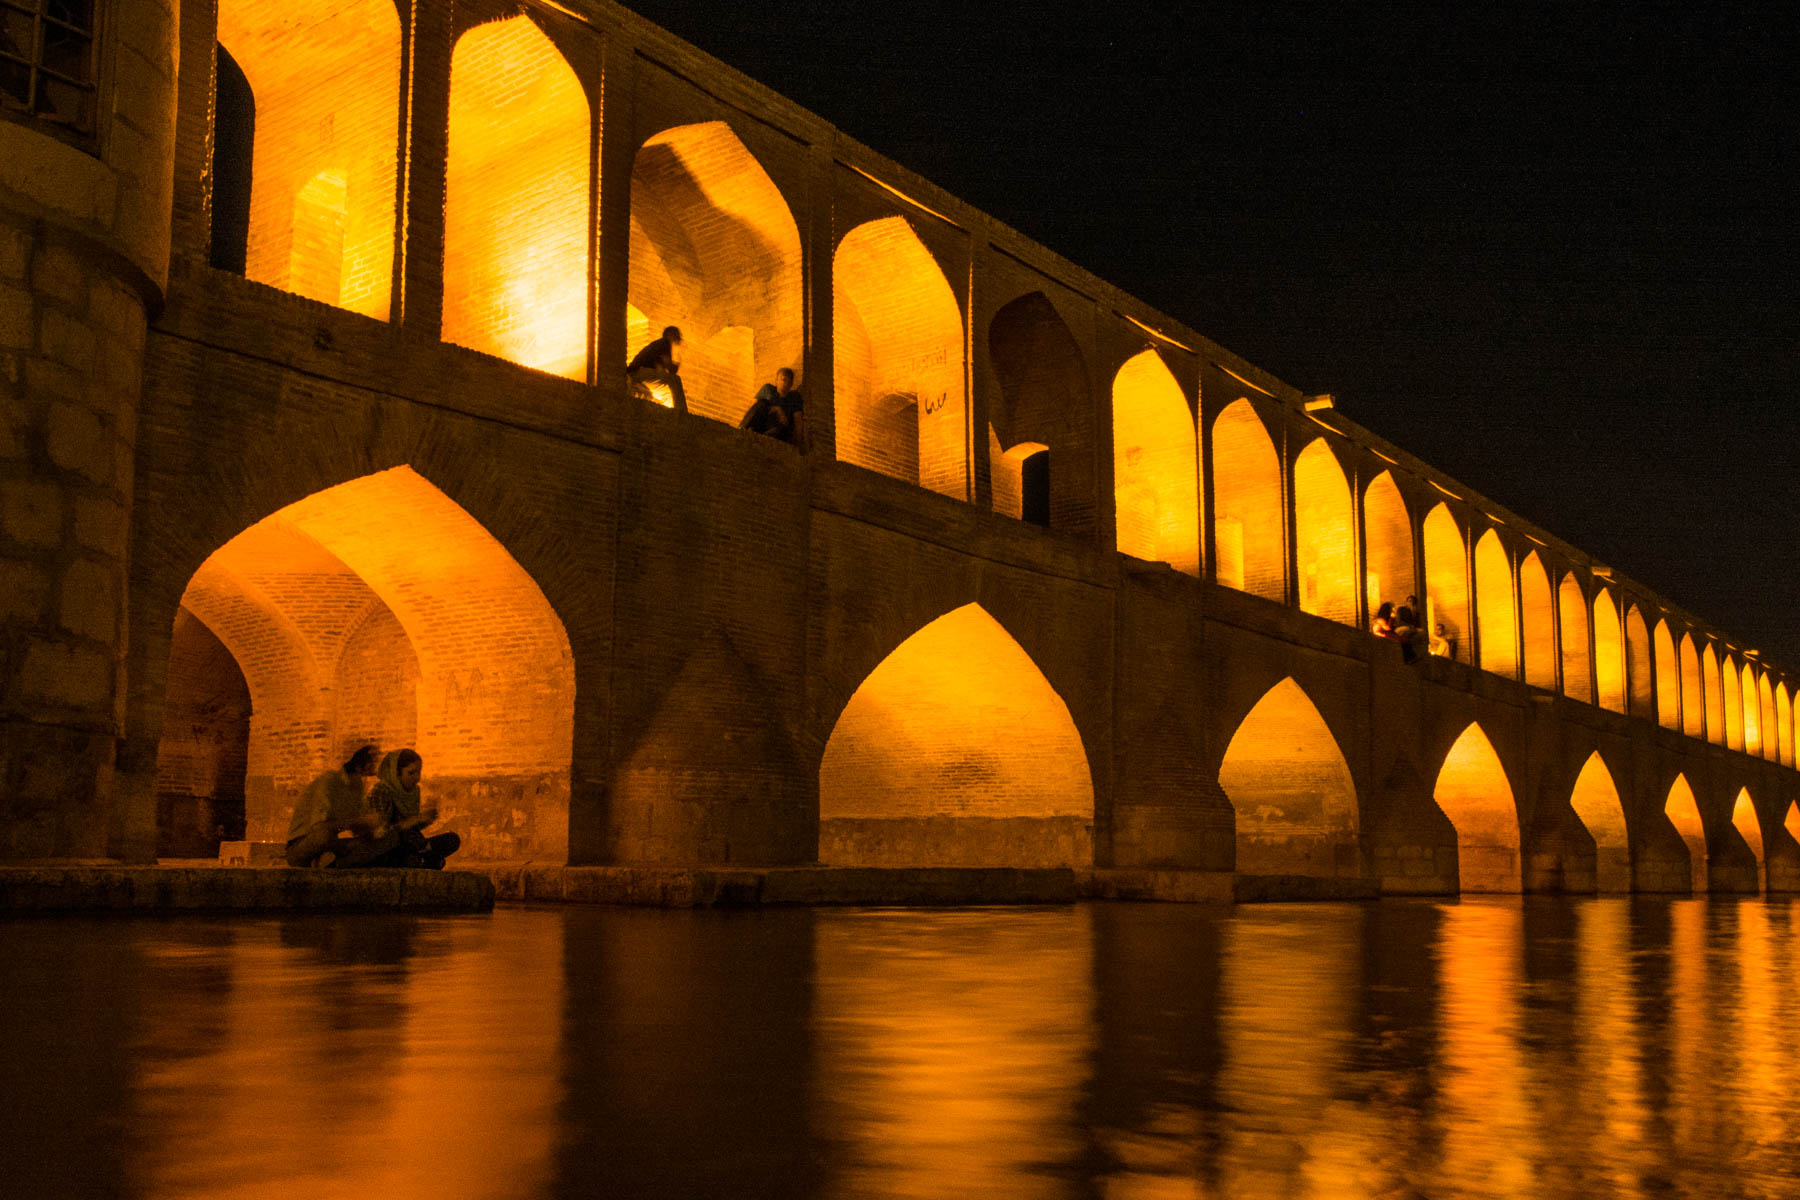 A two week Iran travel itinerary - The Si-o-seh pol bridge in Esfahan, Iran - Lost With Purpose